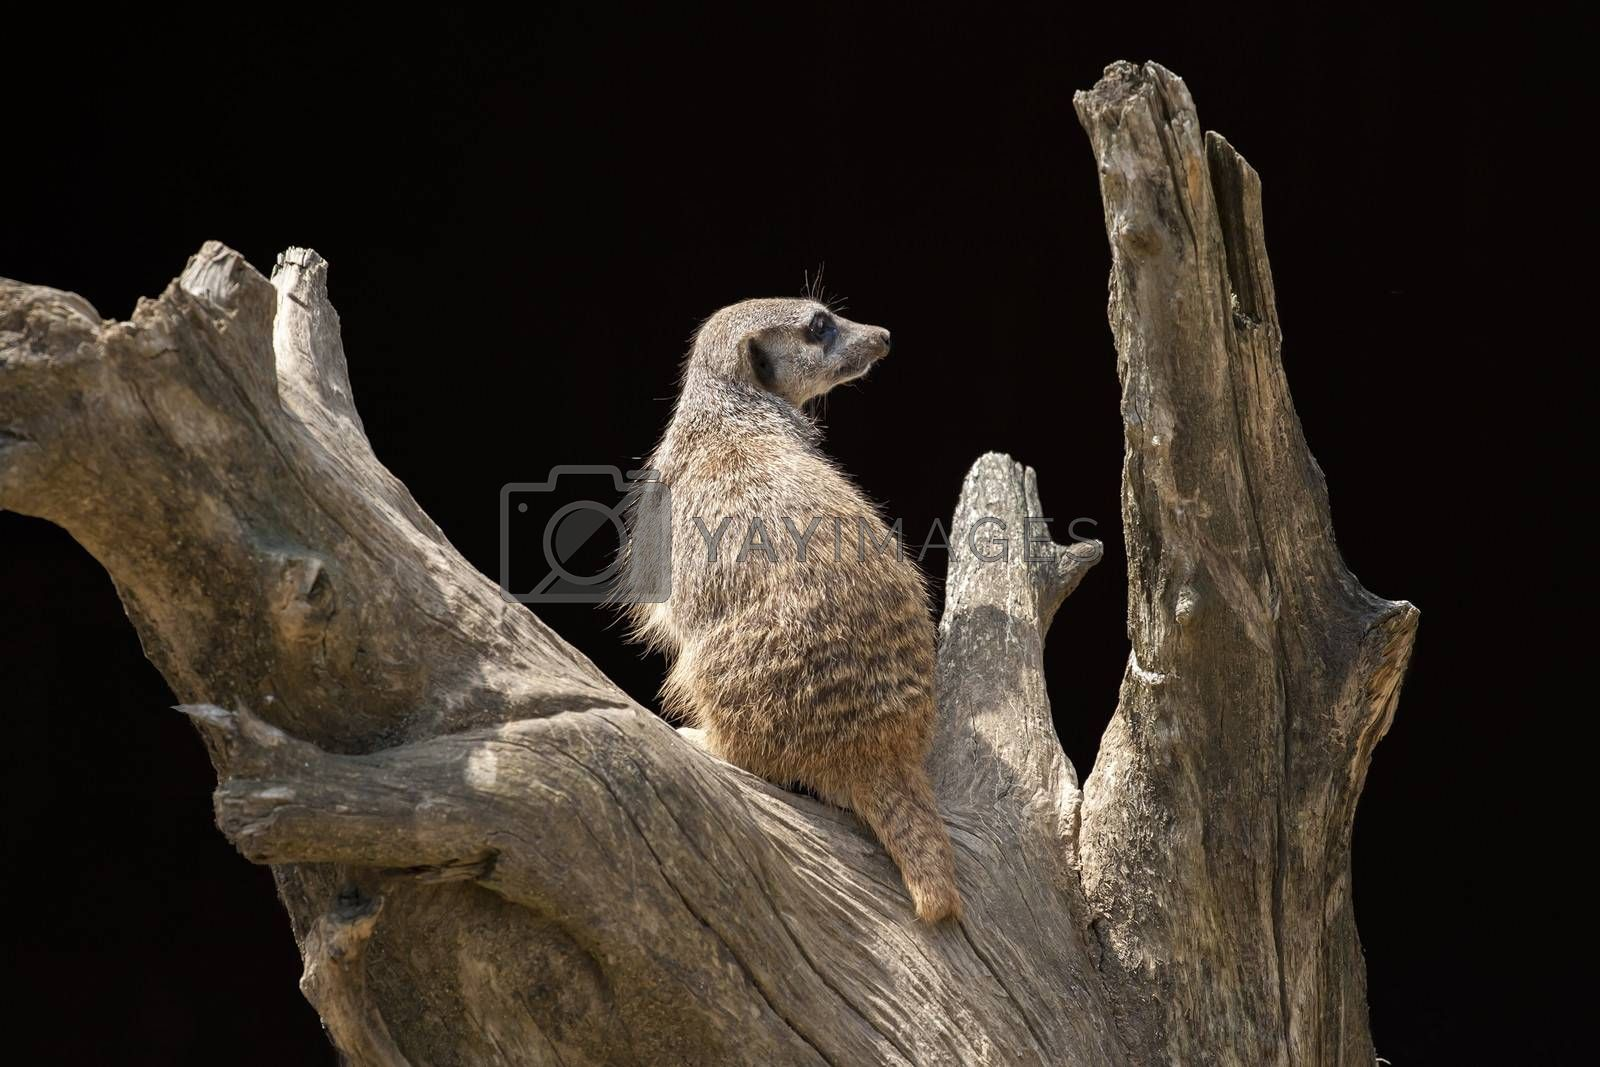 Suricata on the top of a tree